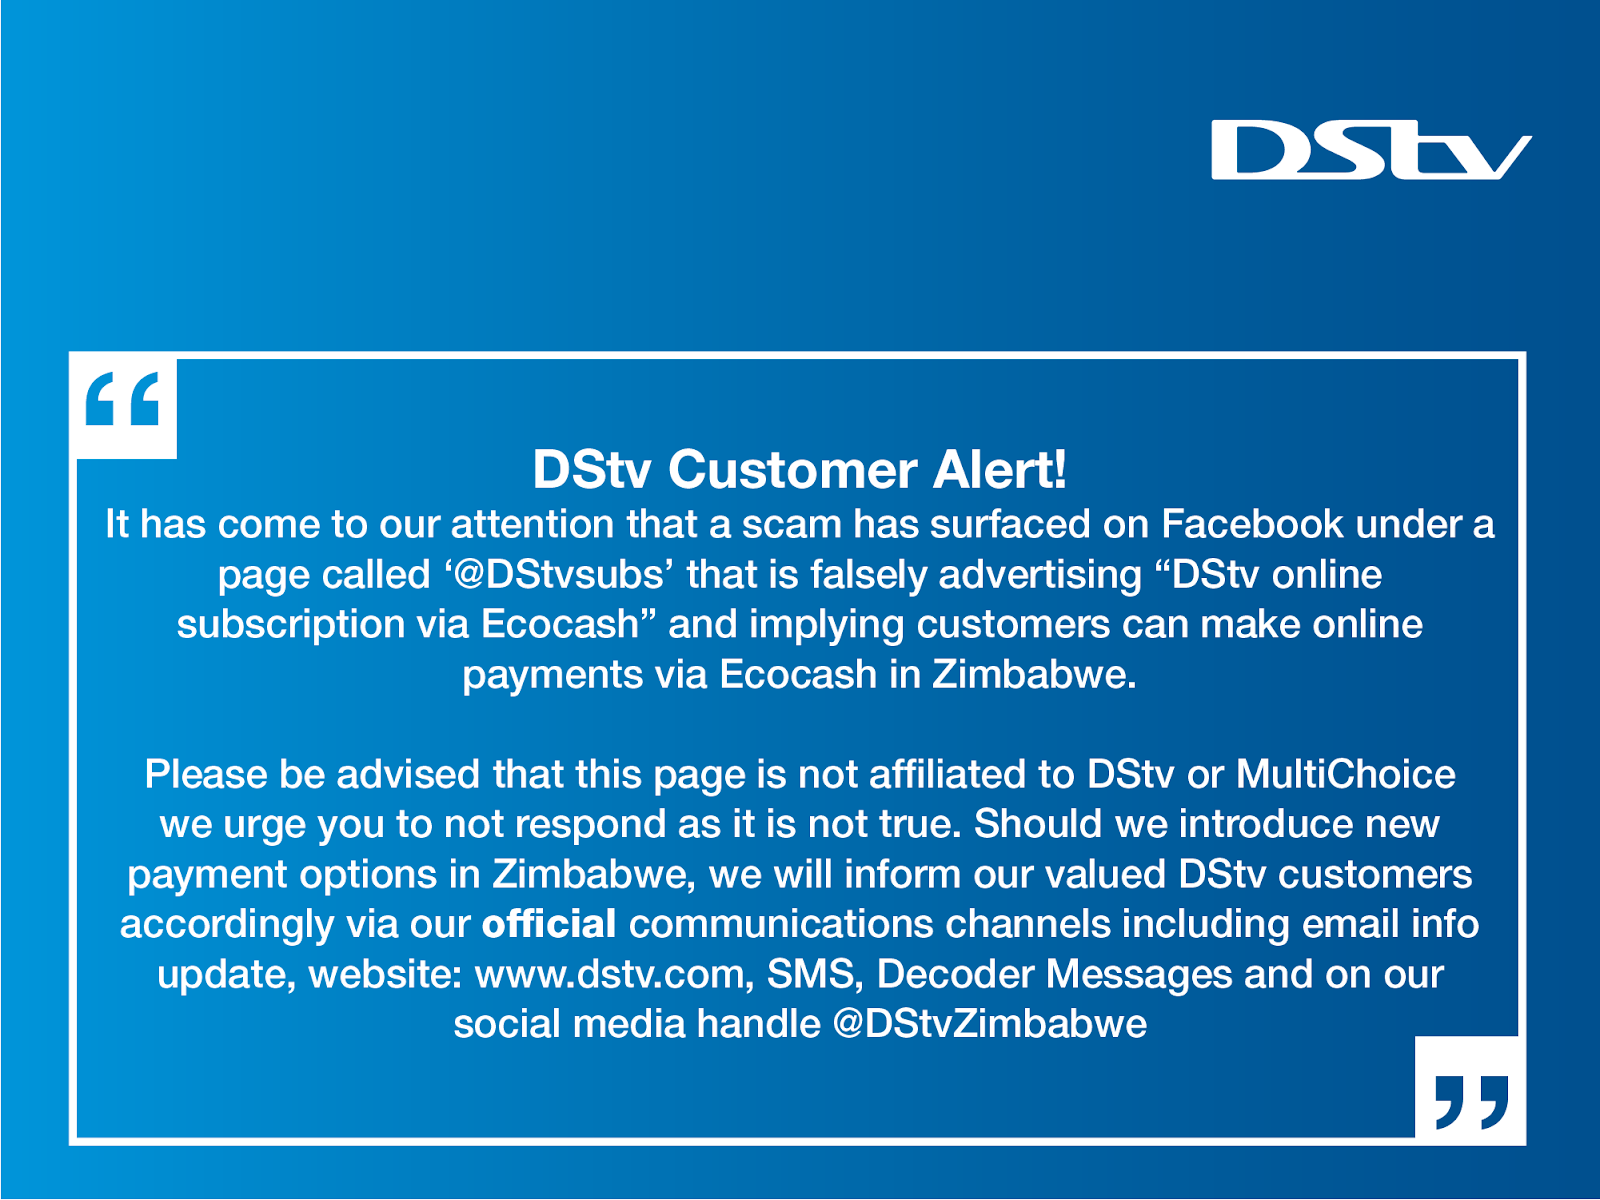 HOW TO DELETE OR REMOVE THE MAIL ENVELOP DISPLAYED ON THE DSTV